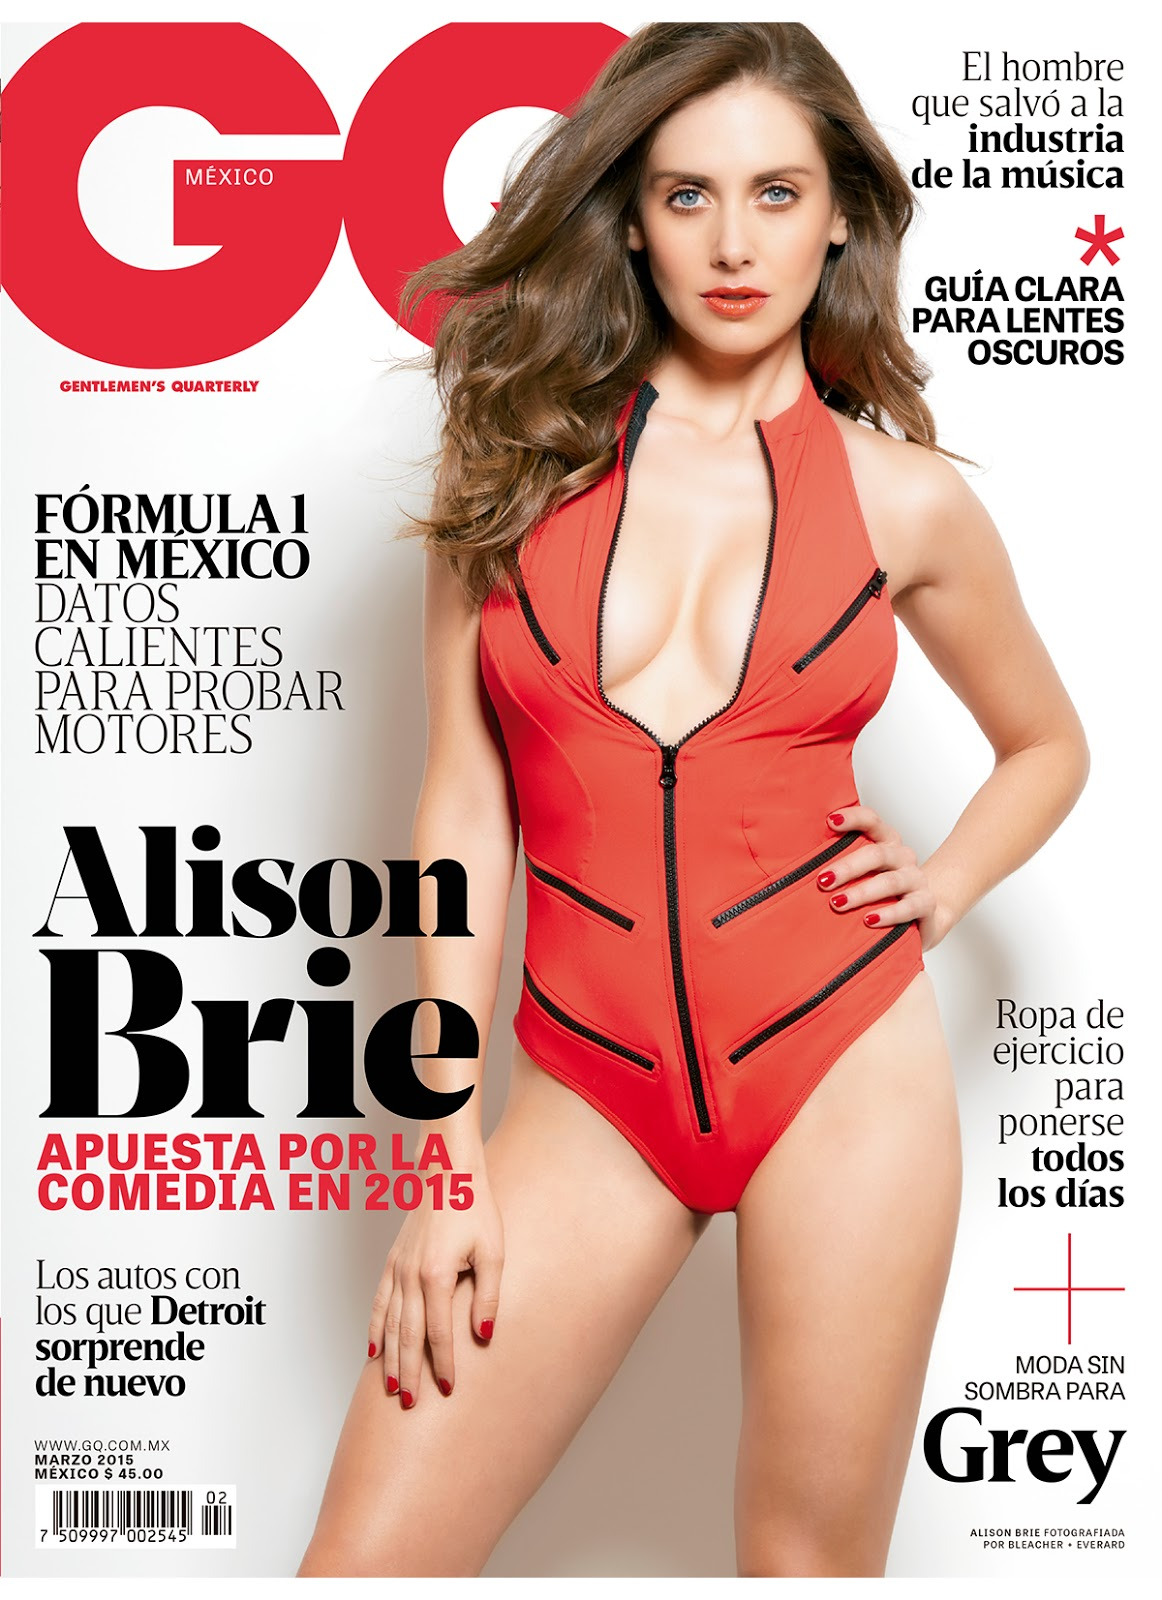 Actress @ Alison Brie - GQ Mexico March 2015 issue